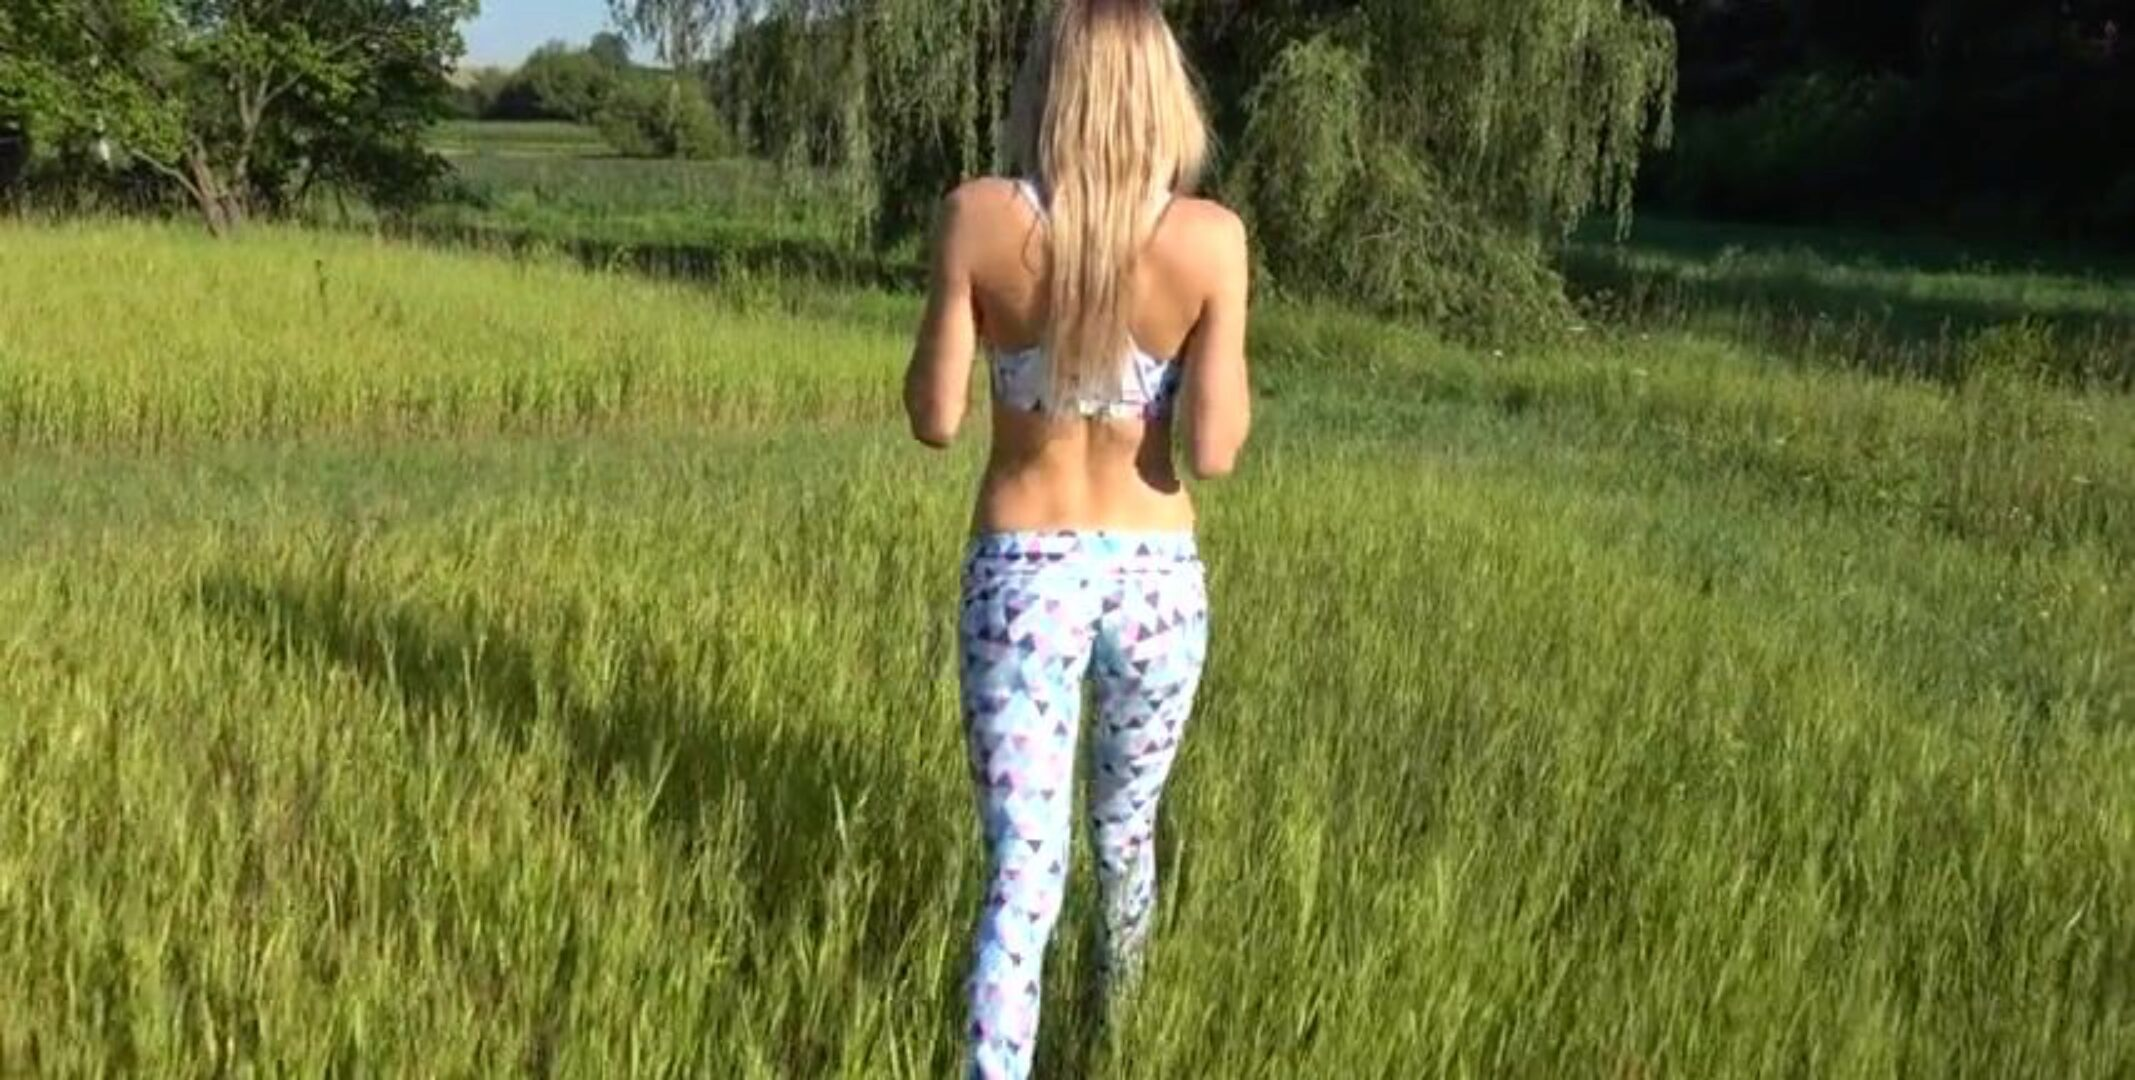 Step Sister Seduced Step Brother With Yoga Pants Outdoor - Free Porn Videos - YouPorn Watch step sister enticed step stepbro with yoga pants outdoor online on YouPorn.com. YouPorn is the biggest Big Dick pornography movie site with the greatest selection of free high quality legings movie scenes Enjoy our HD porn movies on any contraption of your choosing!